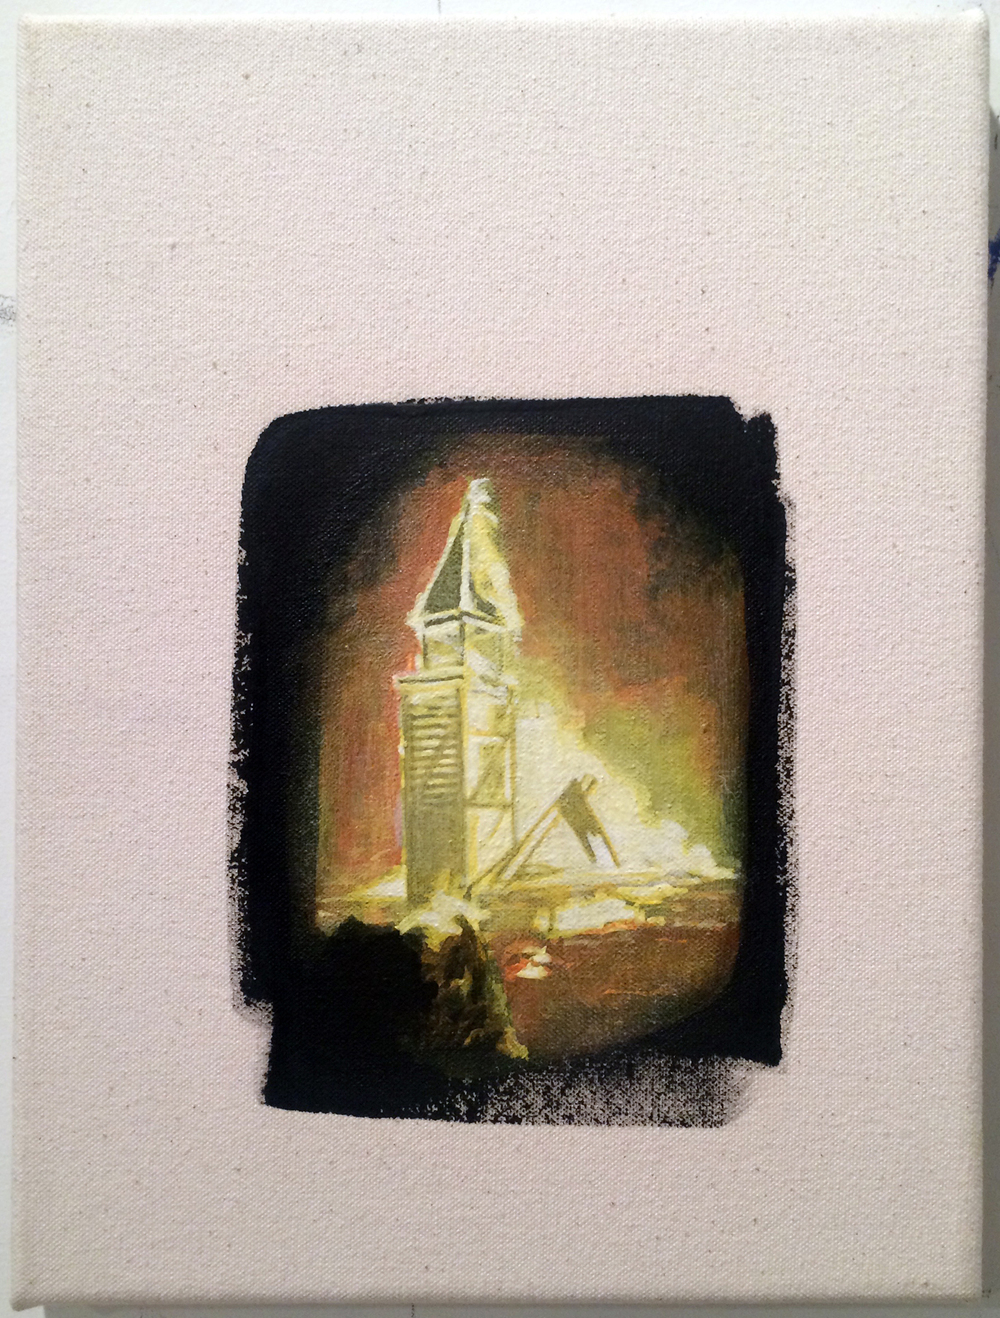 from  Atlas:  Church, 2016 Acrylic and gesso on canvas 8 x 10 inches